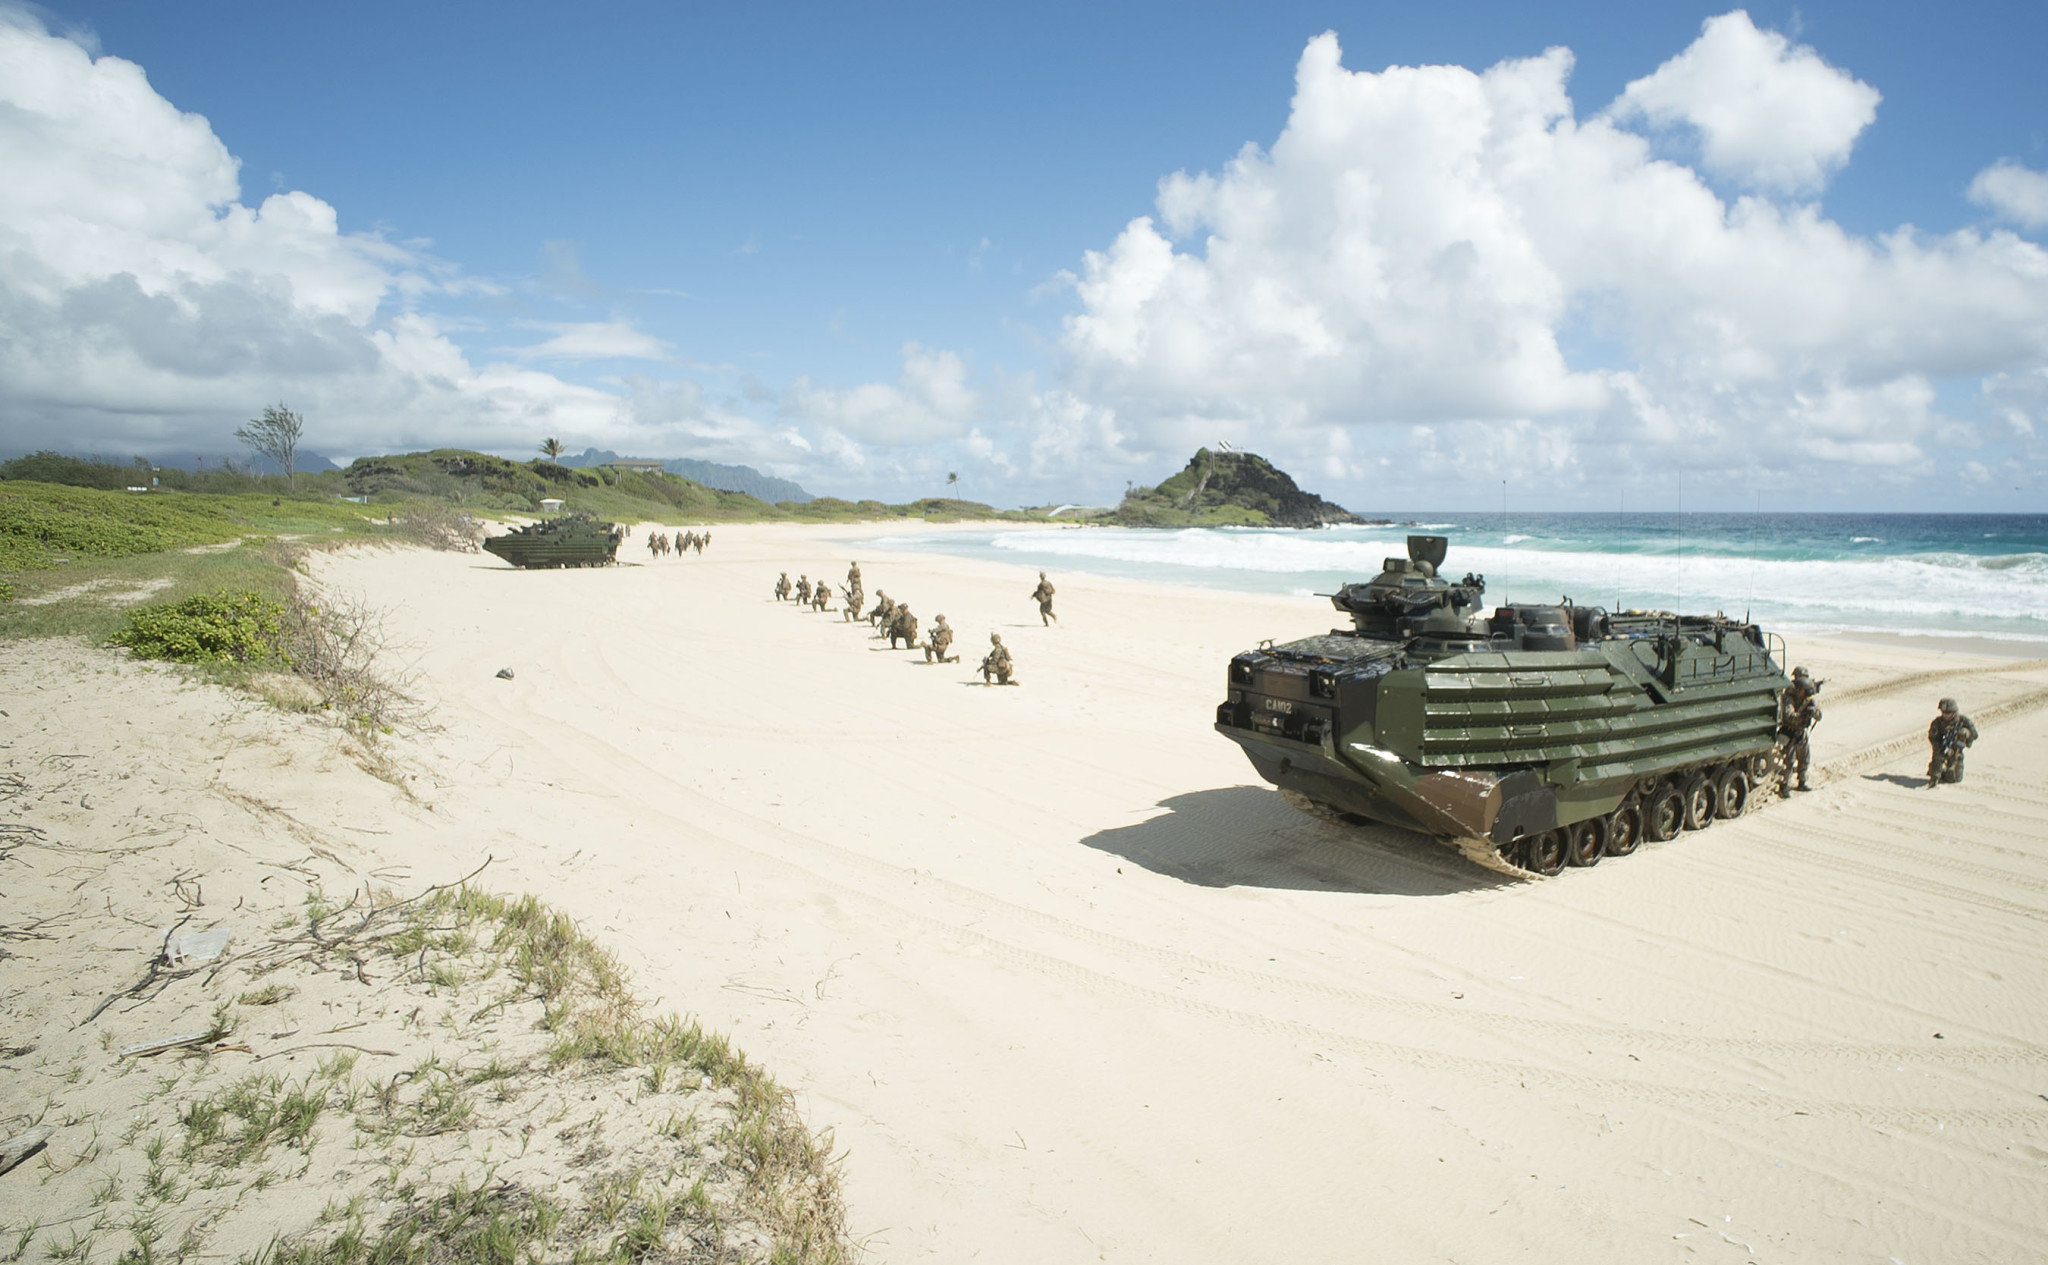 <p>Accompanied by what looked like toy soldiers, amphibious assault vehicles rolled onto the sand at Pyramid Rock Beach.</p>